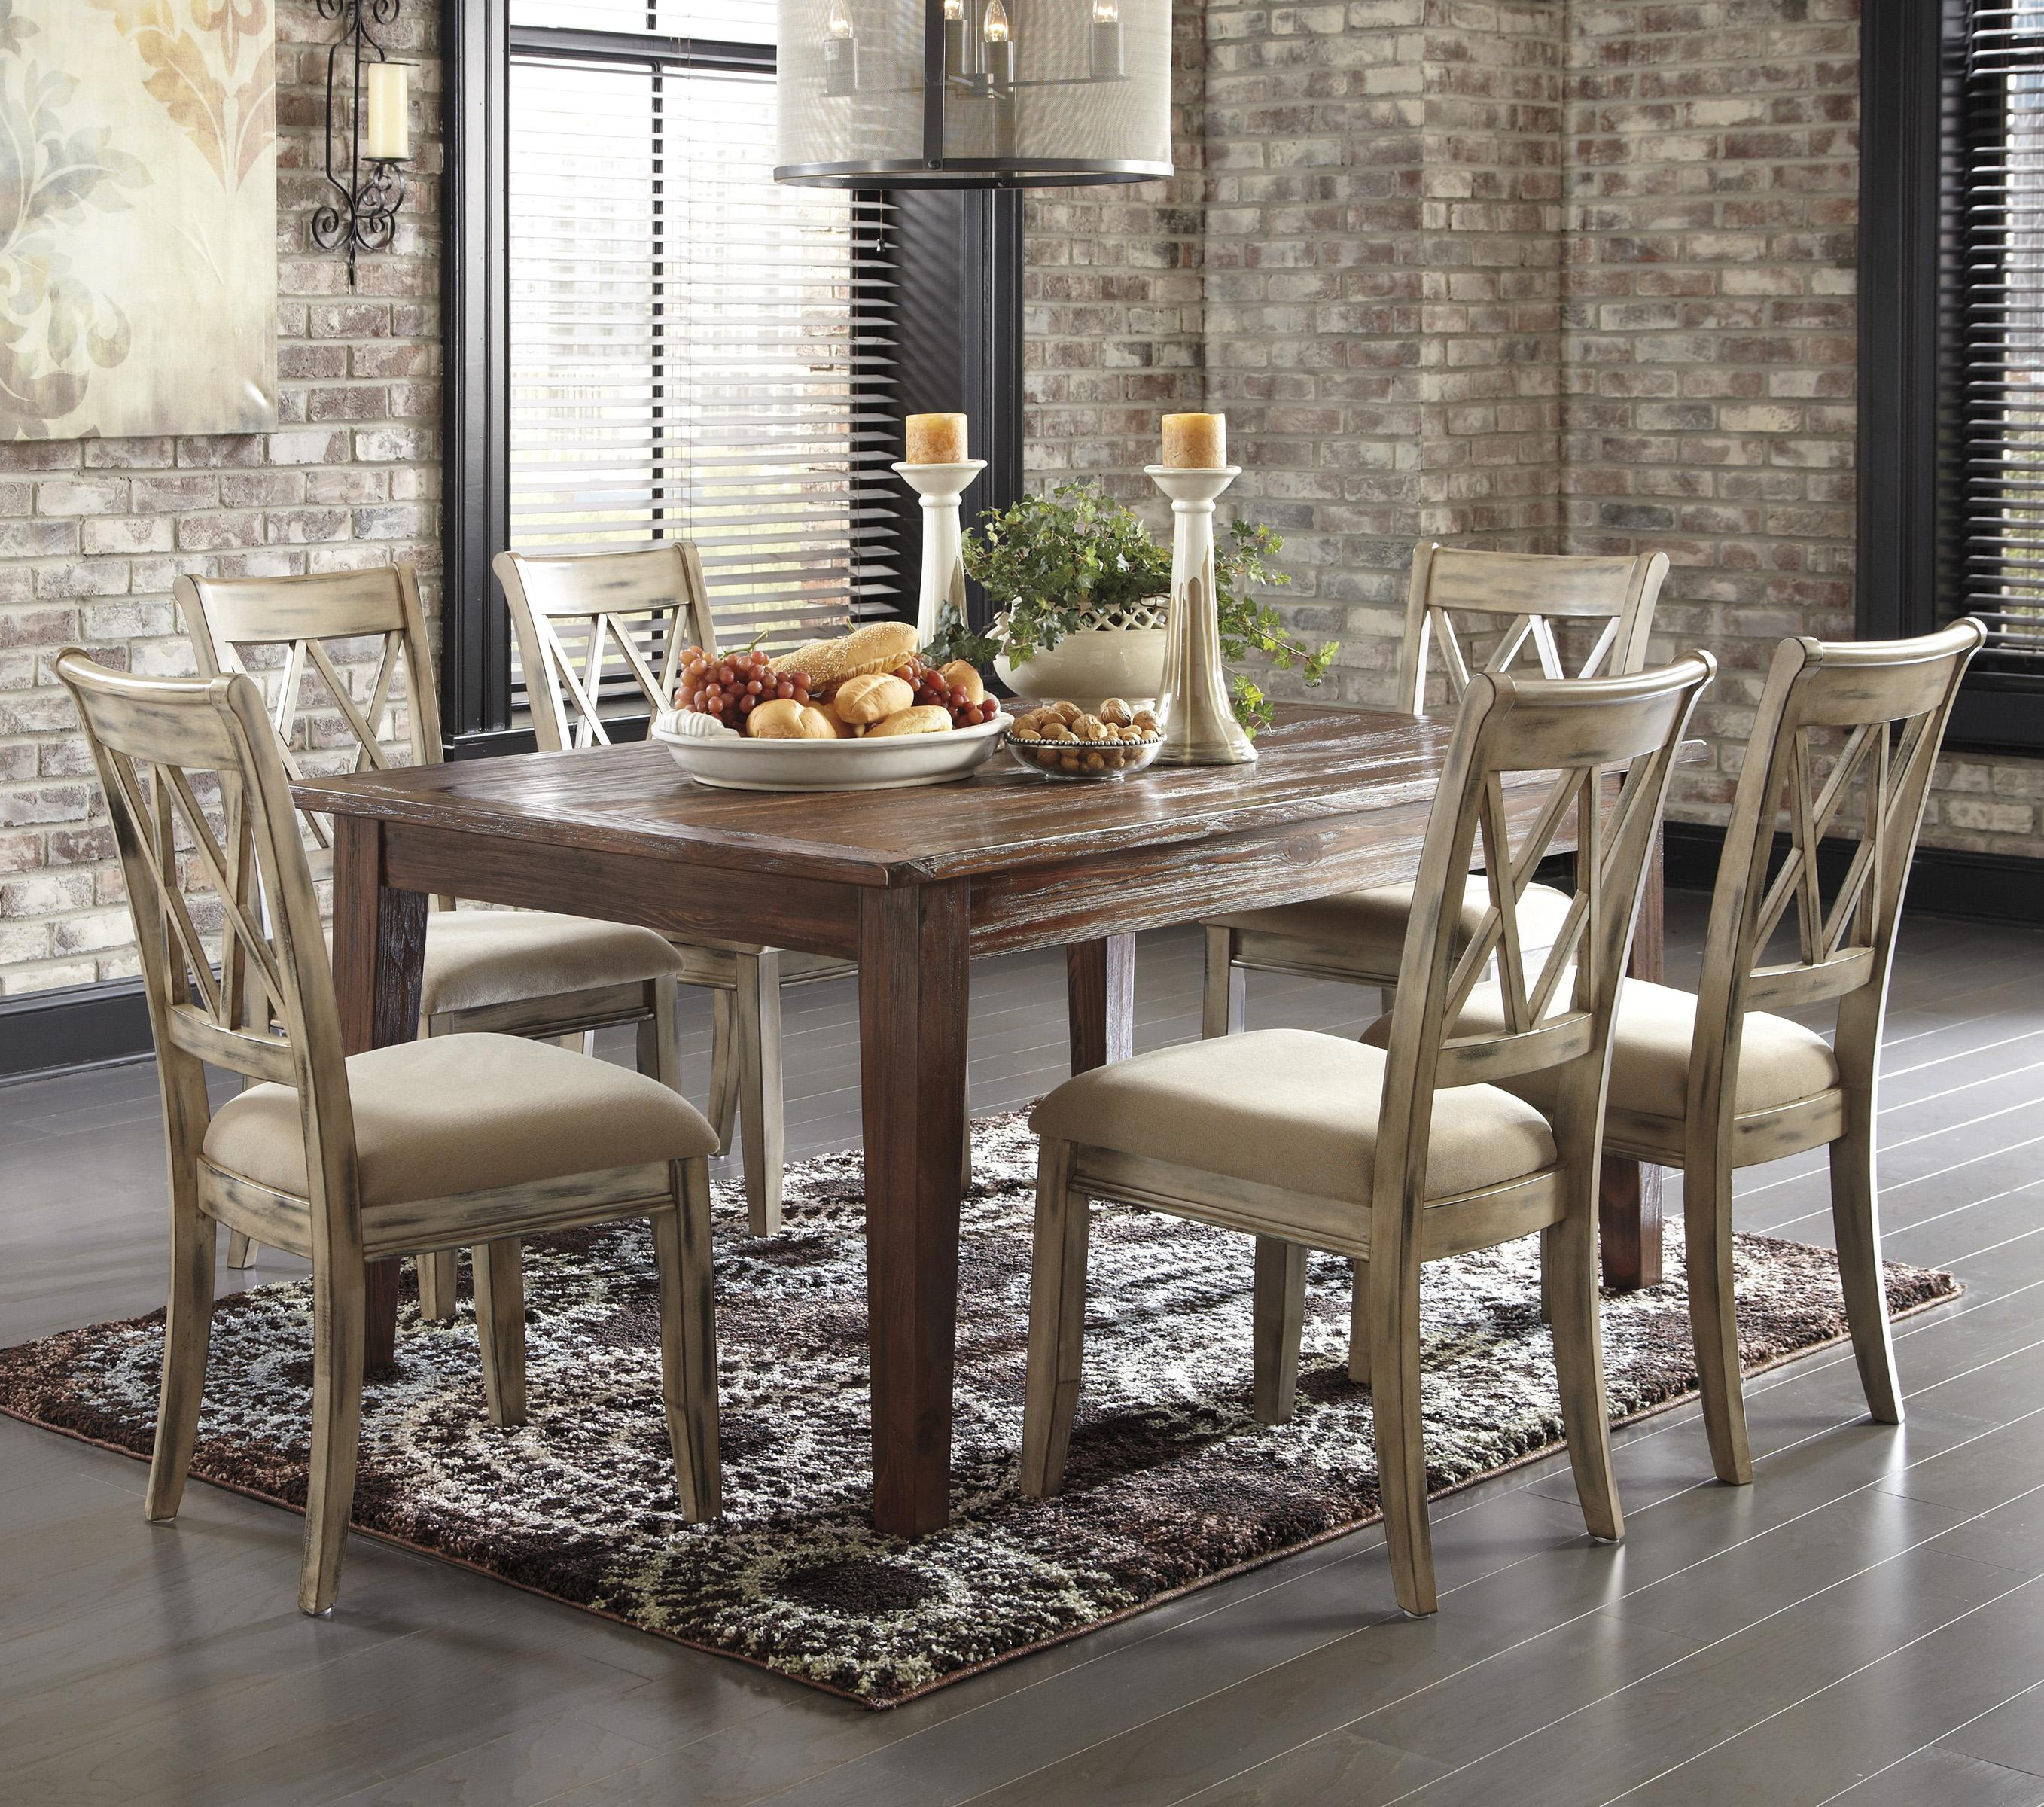 Signature Design by Ashley Mestler 7-Piece Table Set with Antique White Chairs - Item Number: D540-125+6x102